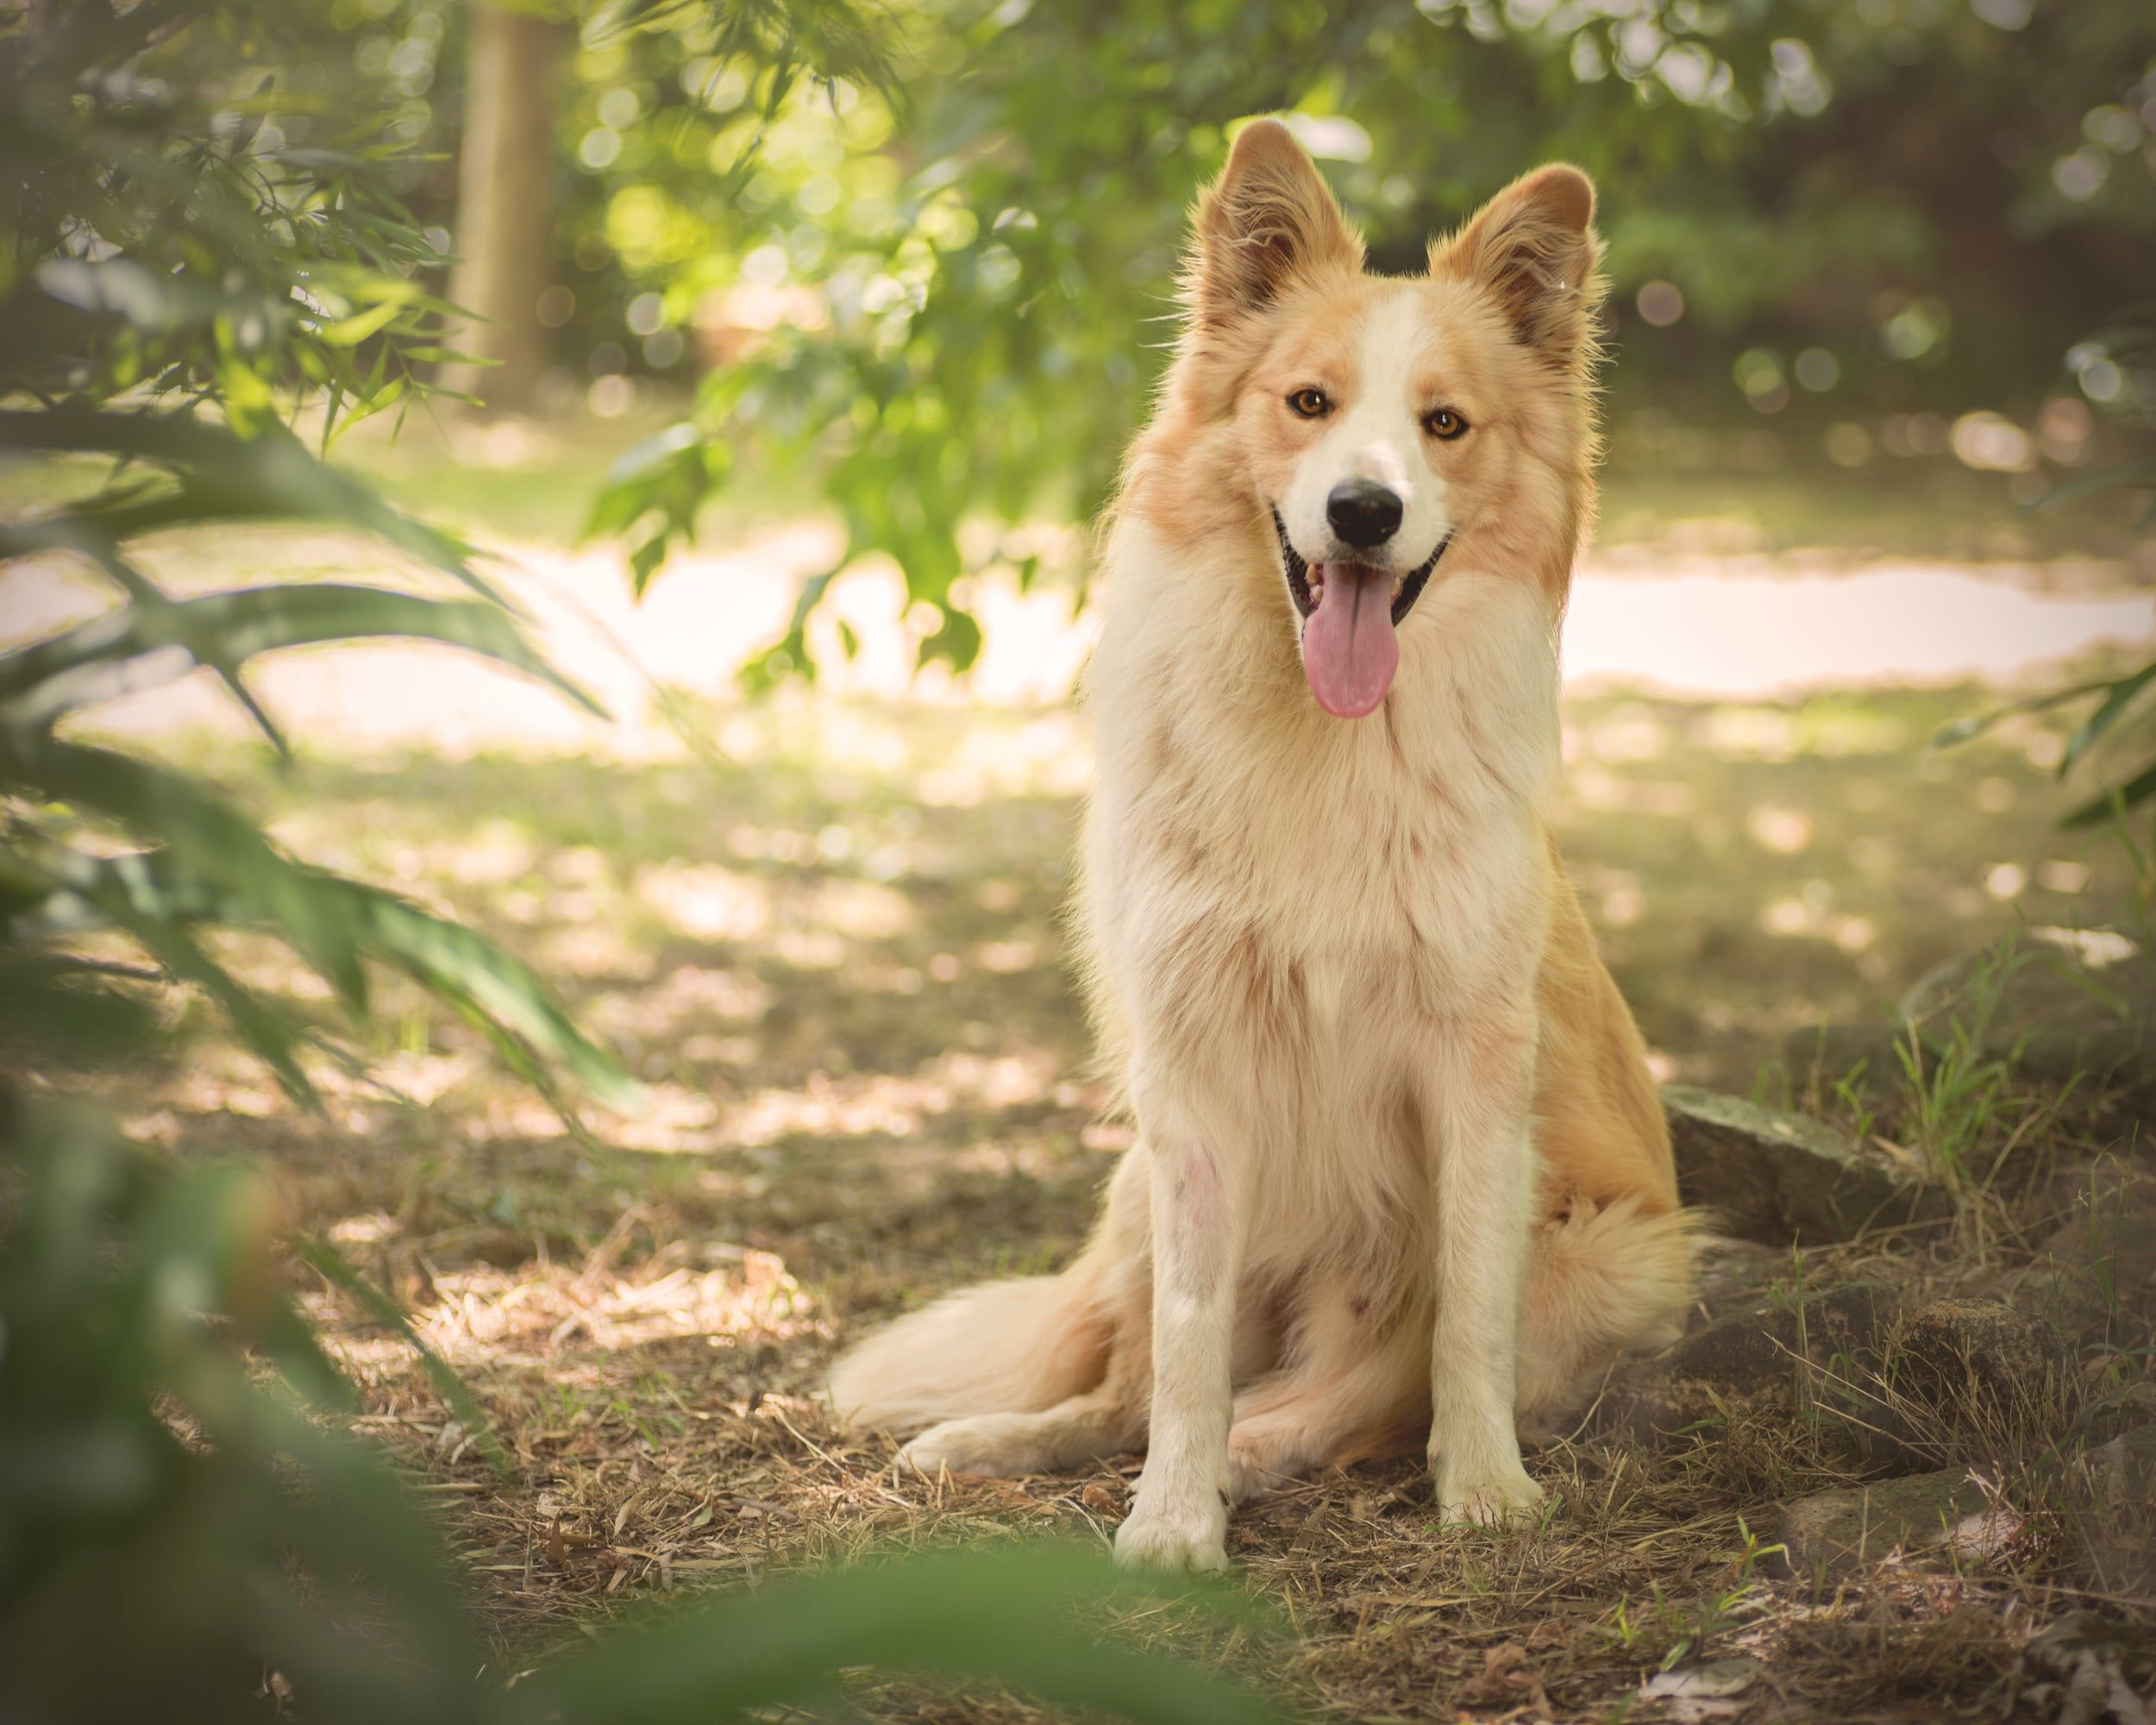 Chester Evm Pet And Nature Photography Yarra Valley Melbourne